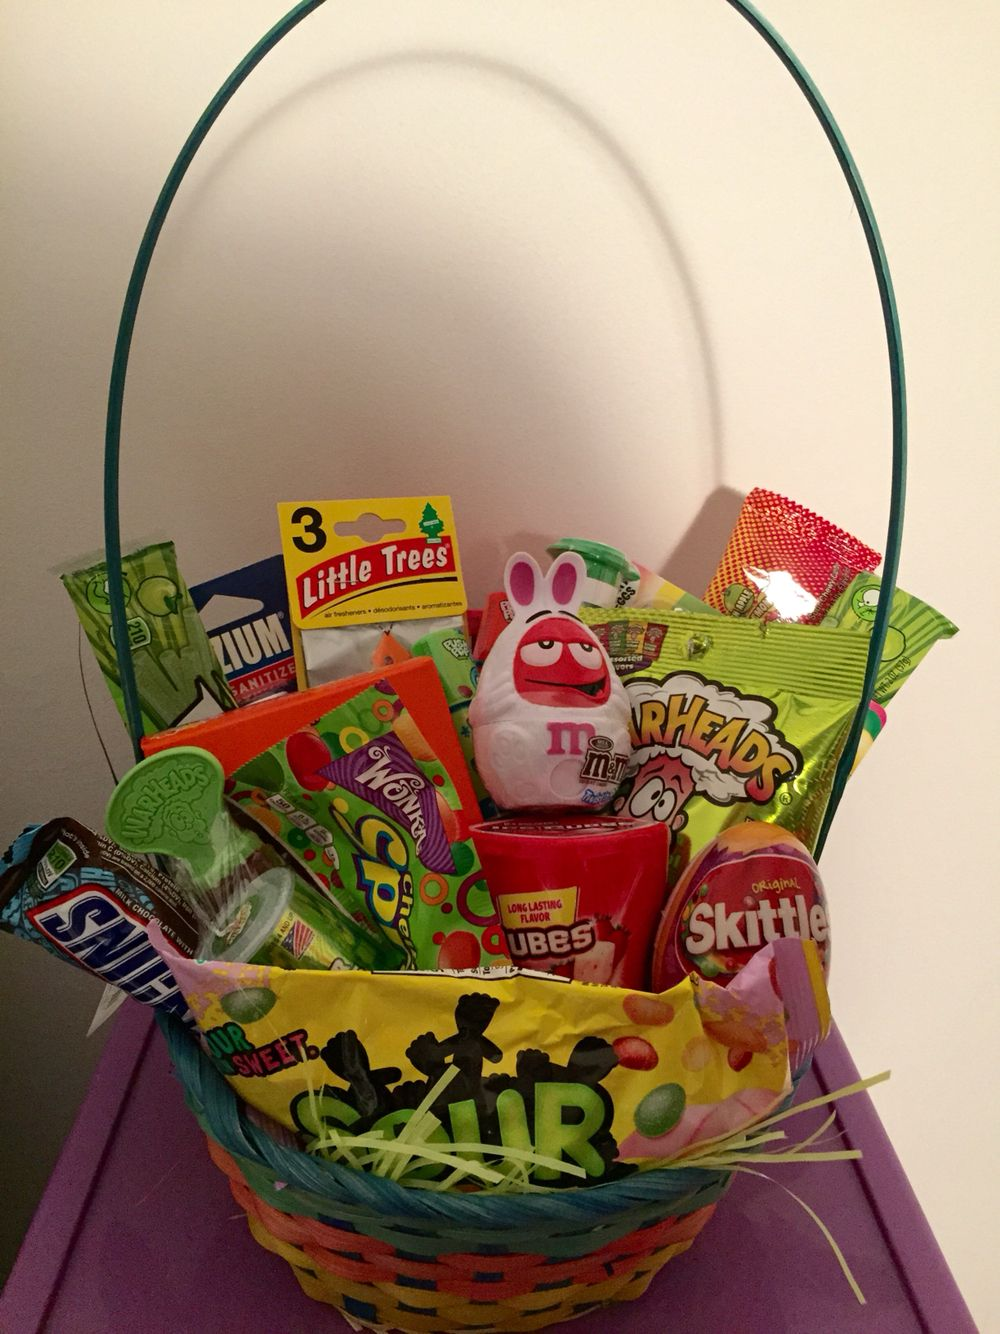 Easter basket for my boyfriend full of his favorite candies and easter basket for my boyfriend full of his favorite candies and goodies negle